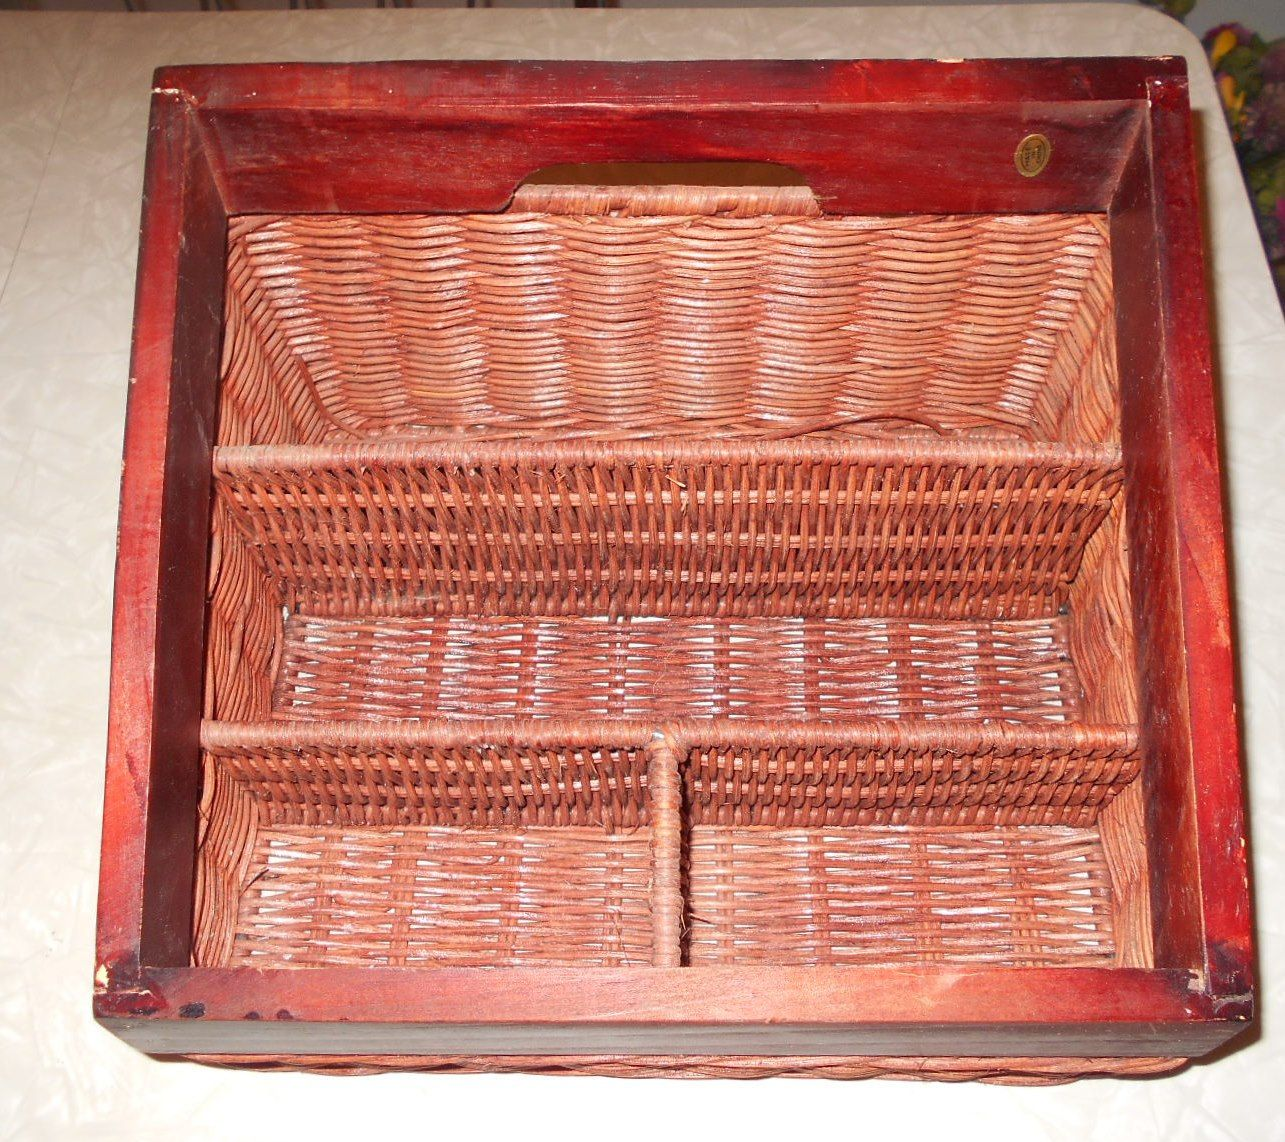 Vintage Wicker and Wood Desk/Mail Organizer/Container 4 Compartments by RadiogirlCarolyn on Etsy